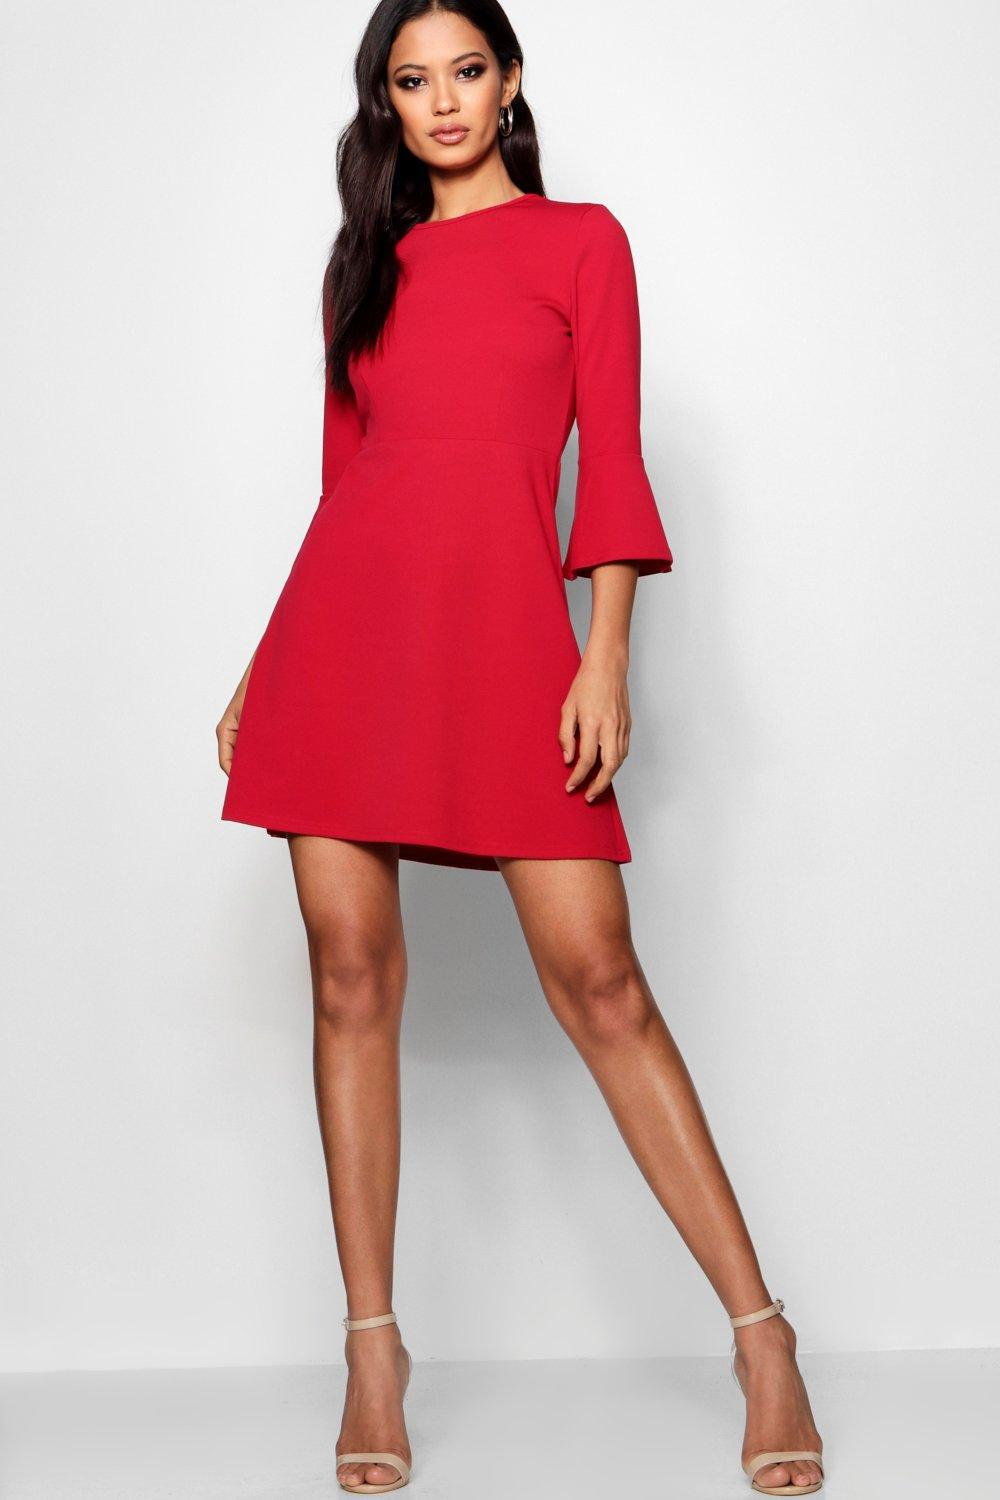 1c485c9cef Lyst - Boohoo Flute Sleeve Skater Dress in Red